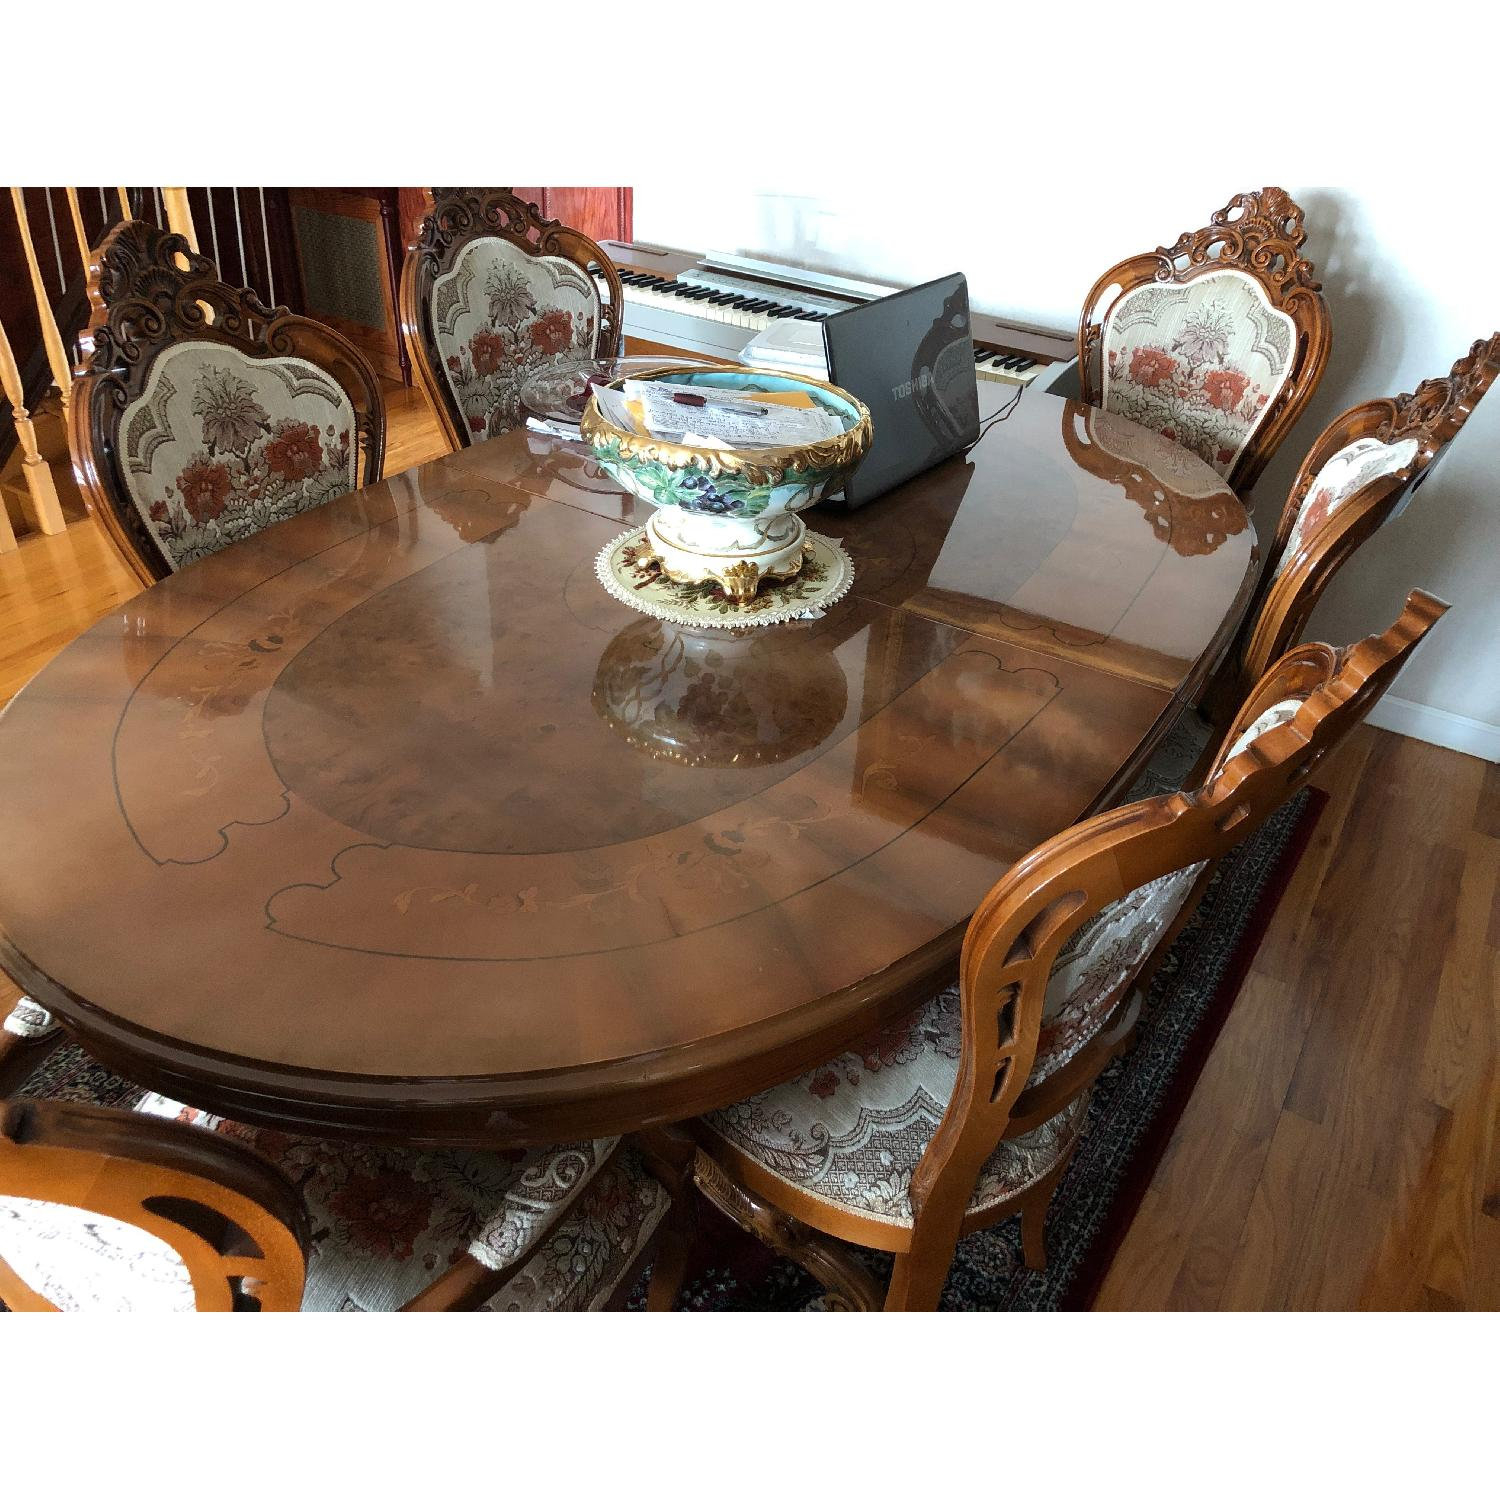 Venetian Natural Wood Italian Dining Table w/ 6 Chairs